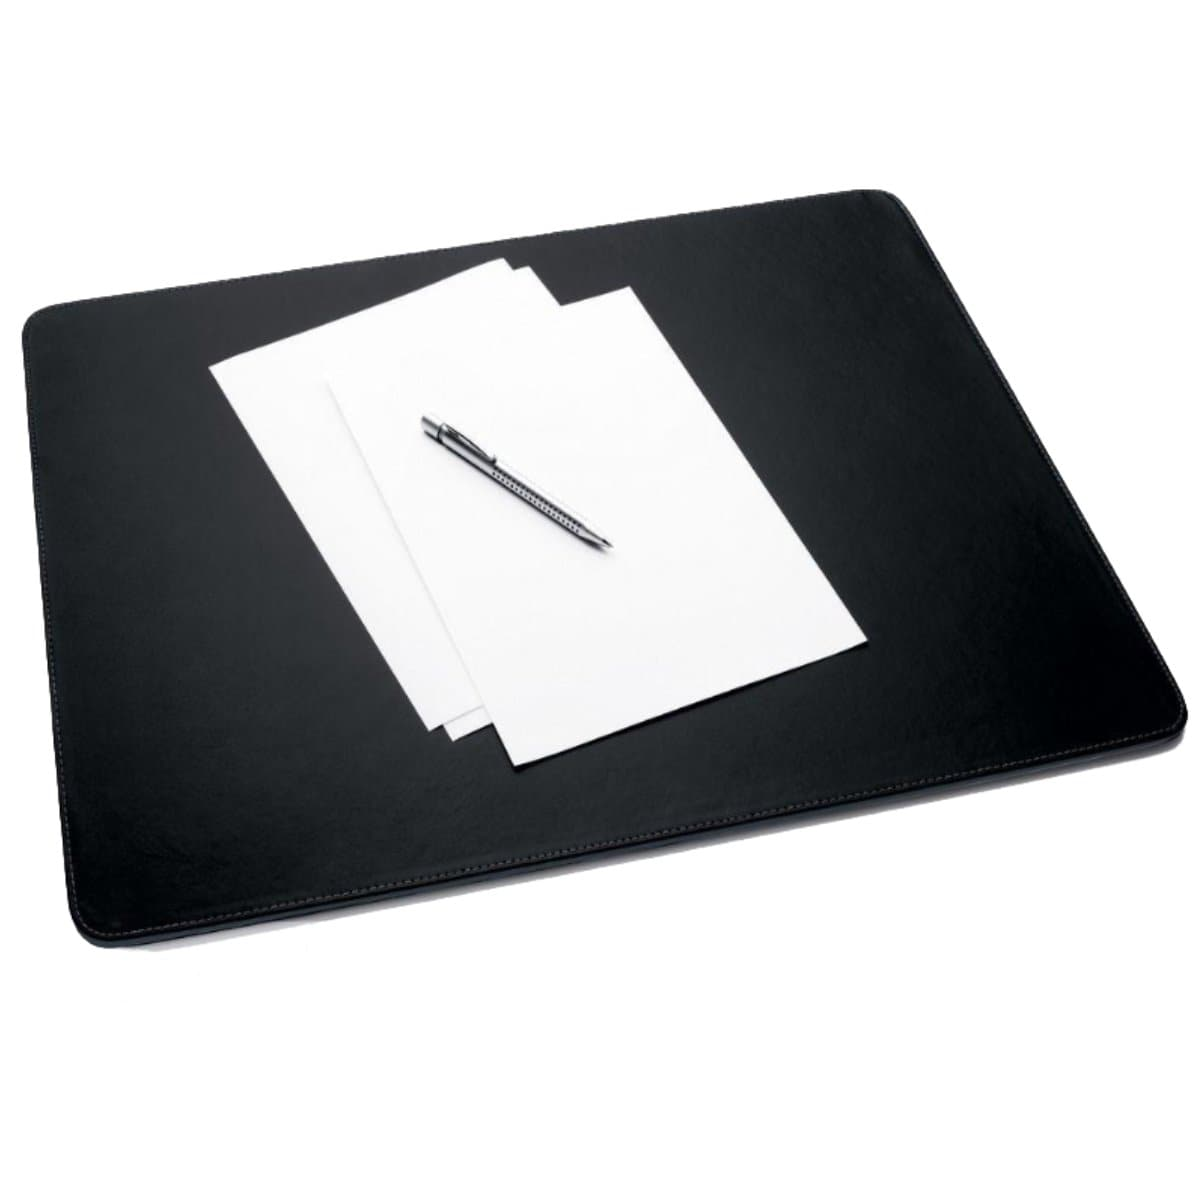 Sigel EYESTYLE Desk Pad, 60 x 45 x 0.6 cm, Anthracite